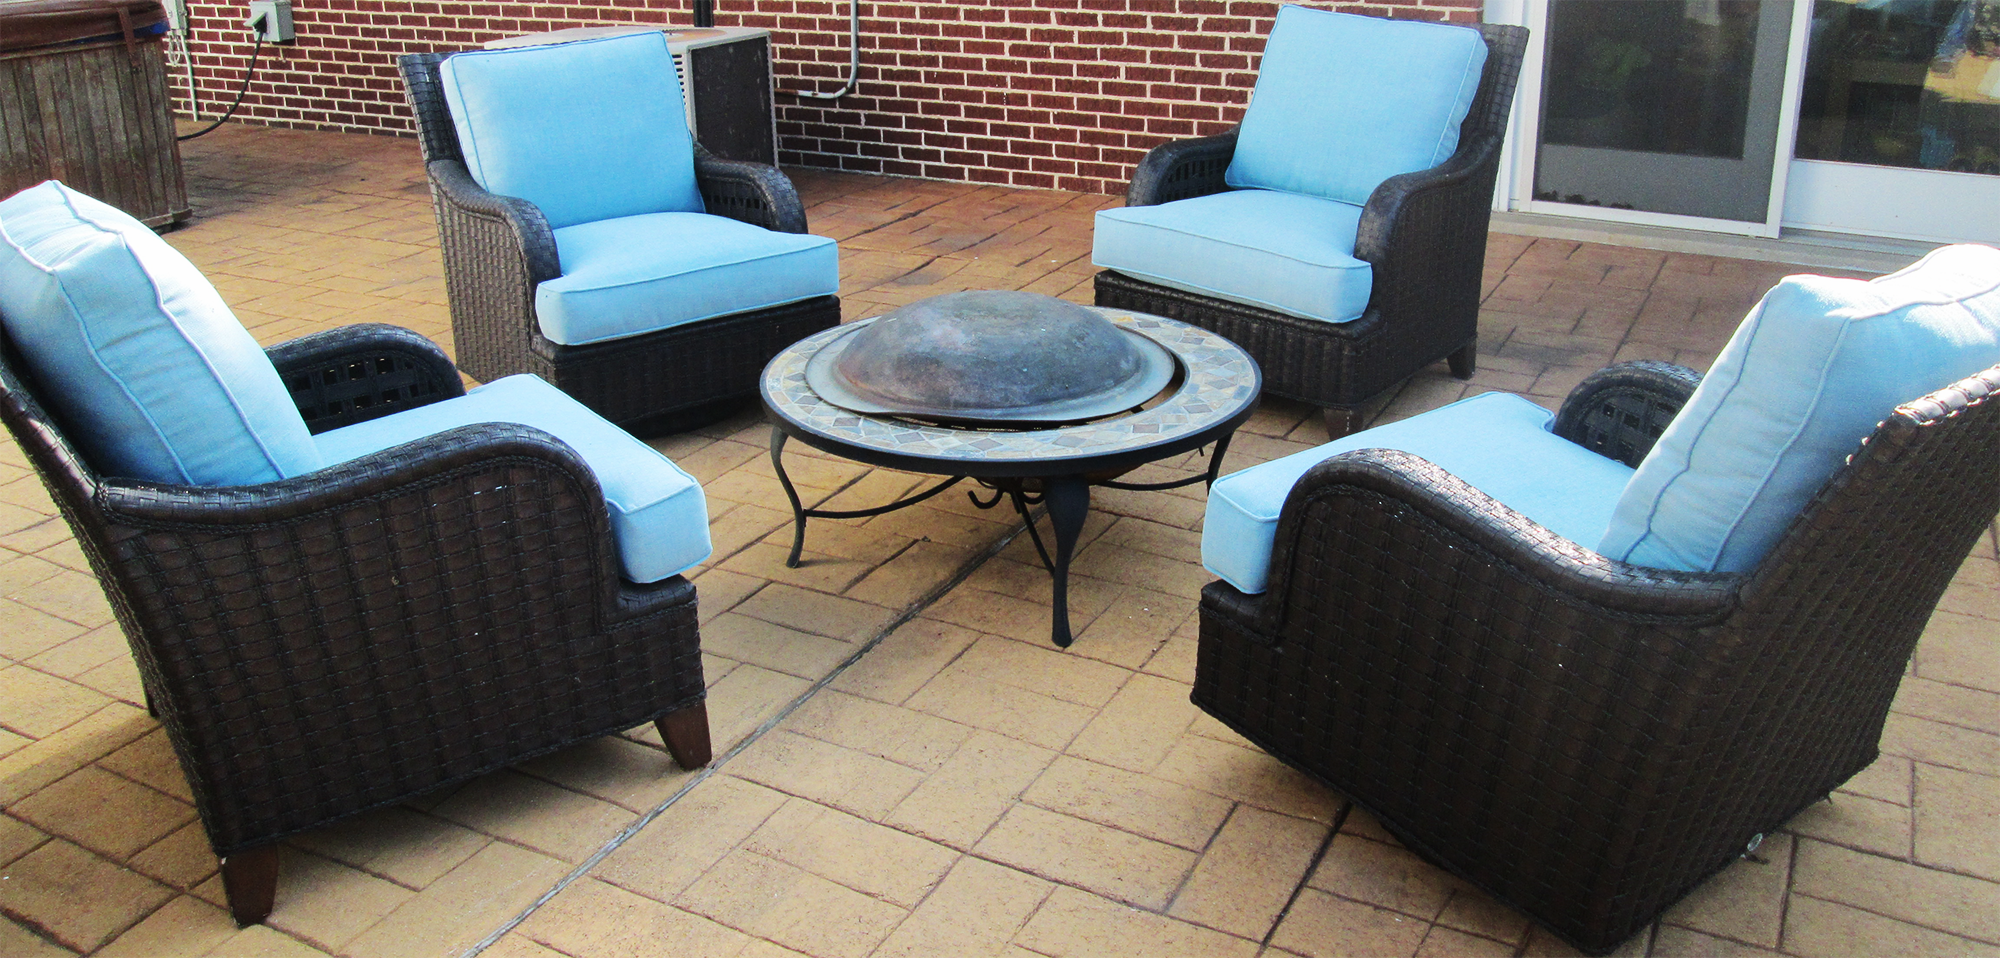 Teak Outdoor Furniture Cleaner And Oil Trend Home Design Outdoor Furniture Oil Oil For Outdoor